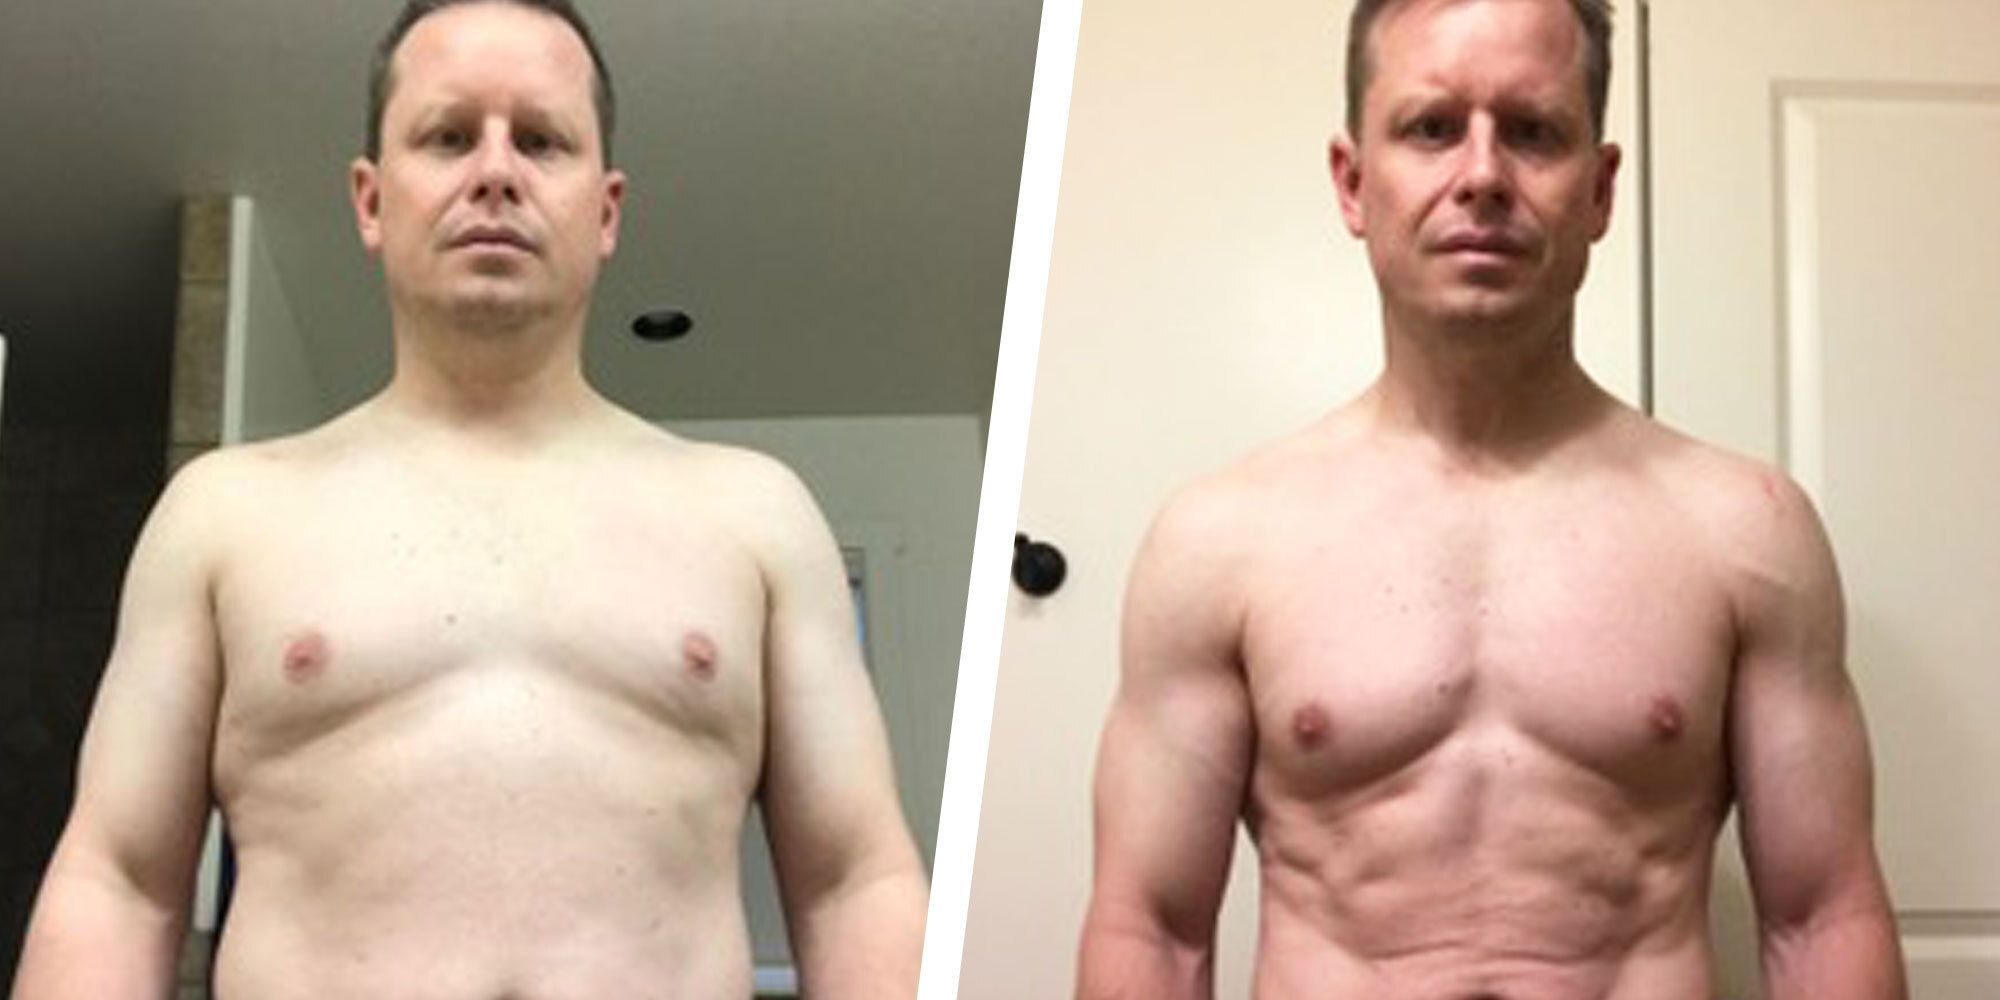 A Realistic Diet and Workout Plan Helped Me Lose 12 Pounds